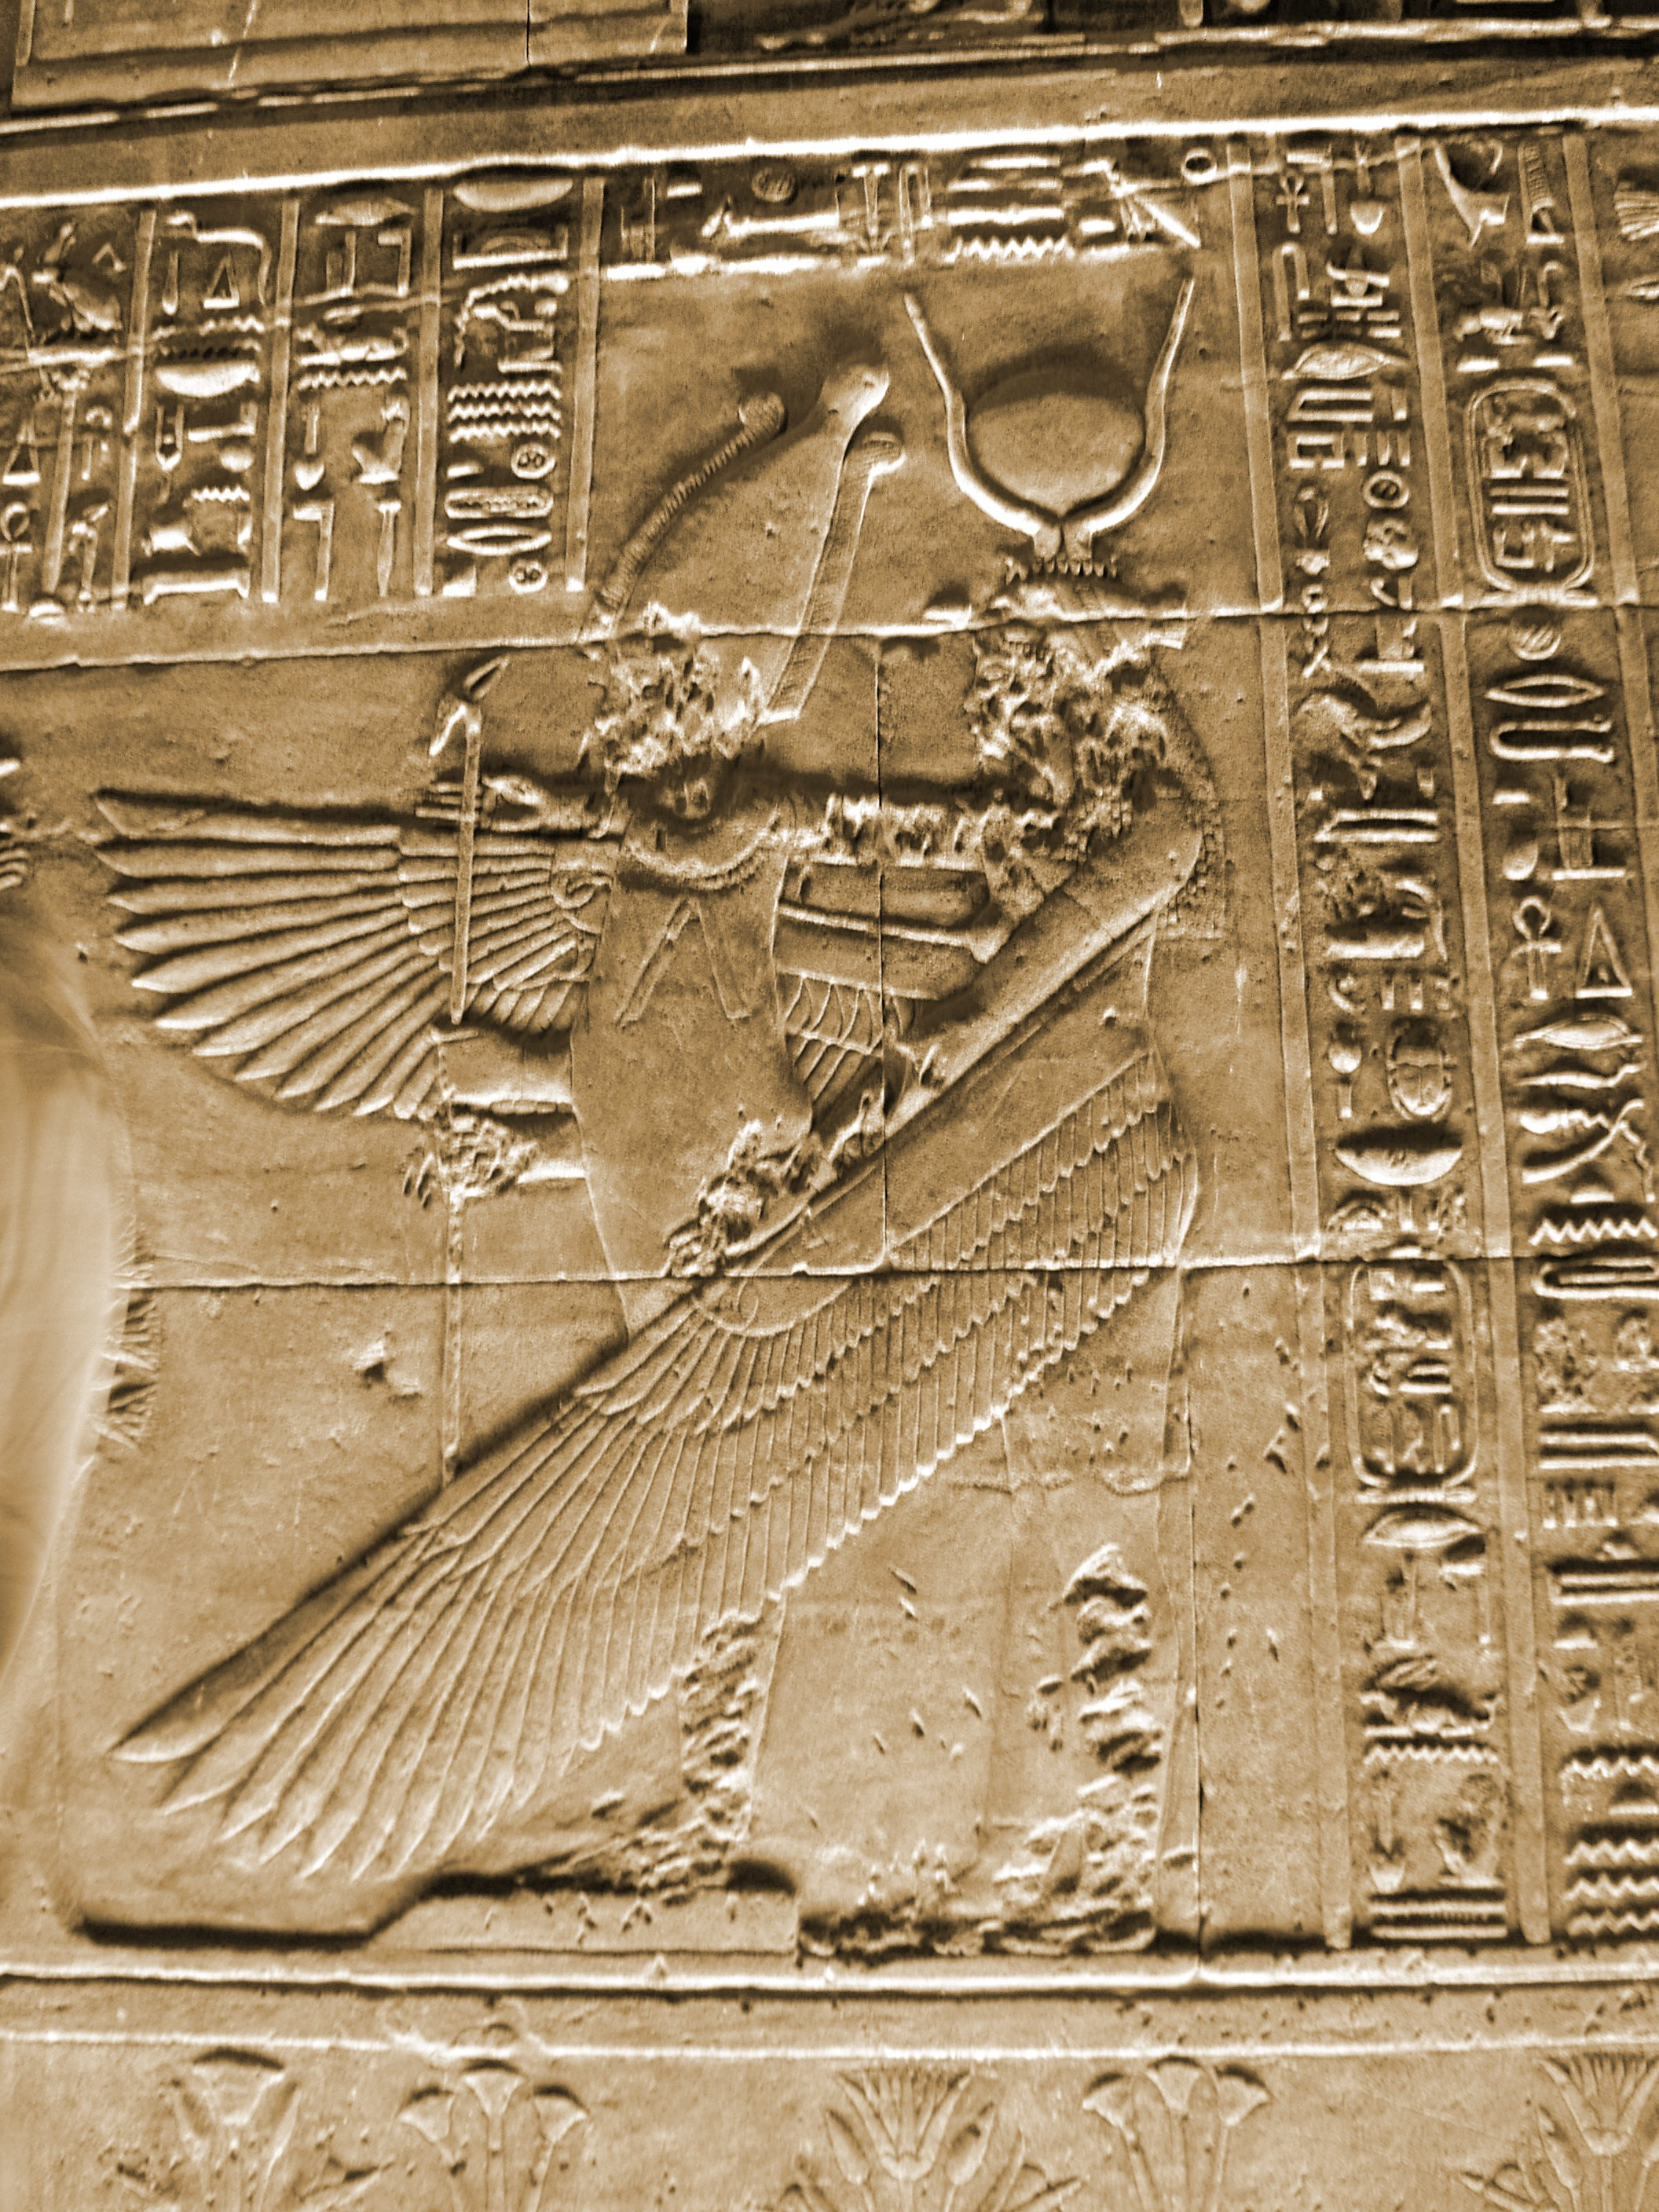 Philae_Temple_Egypt_Goddess_Isis_As_Angel_Mural_Artwork_2004-10-11.jpg